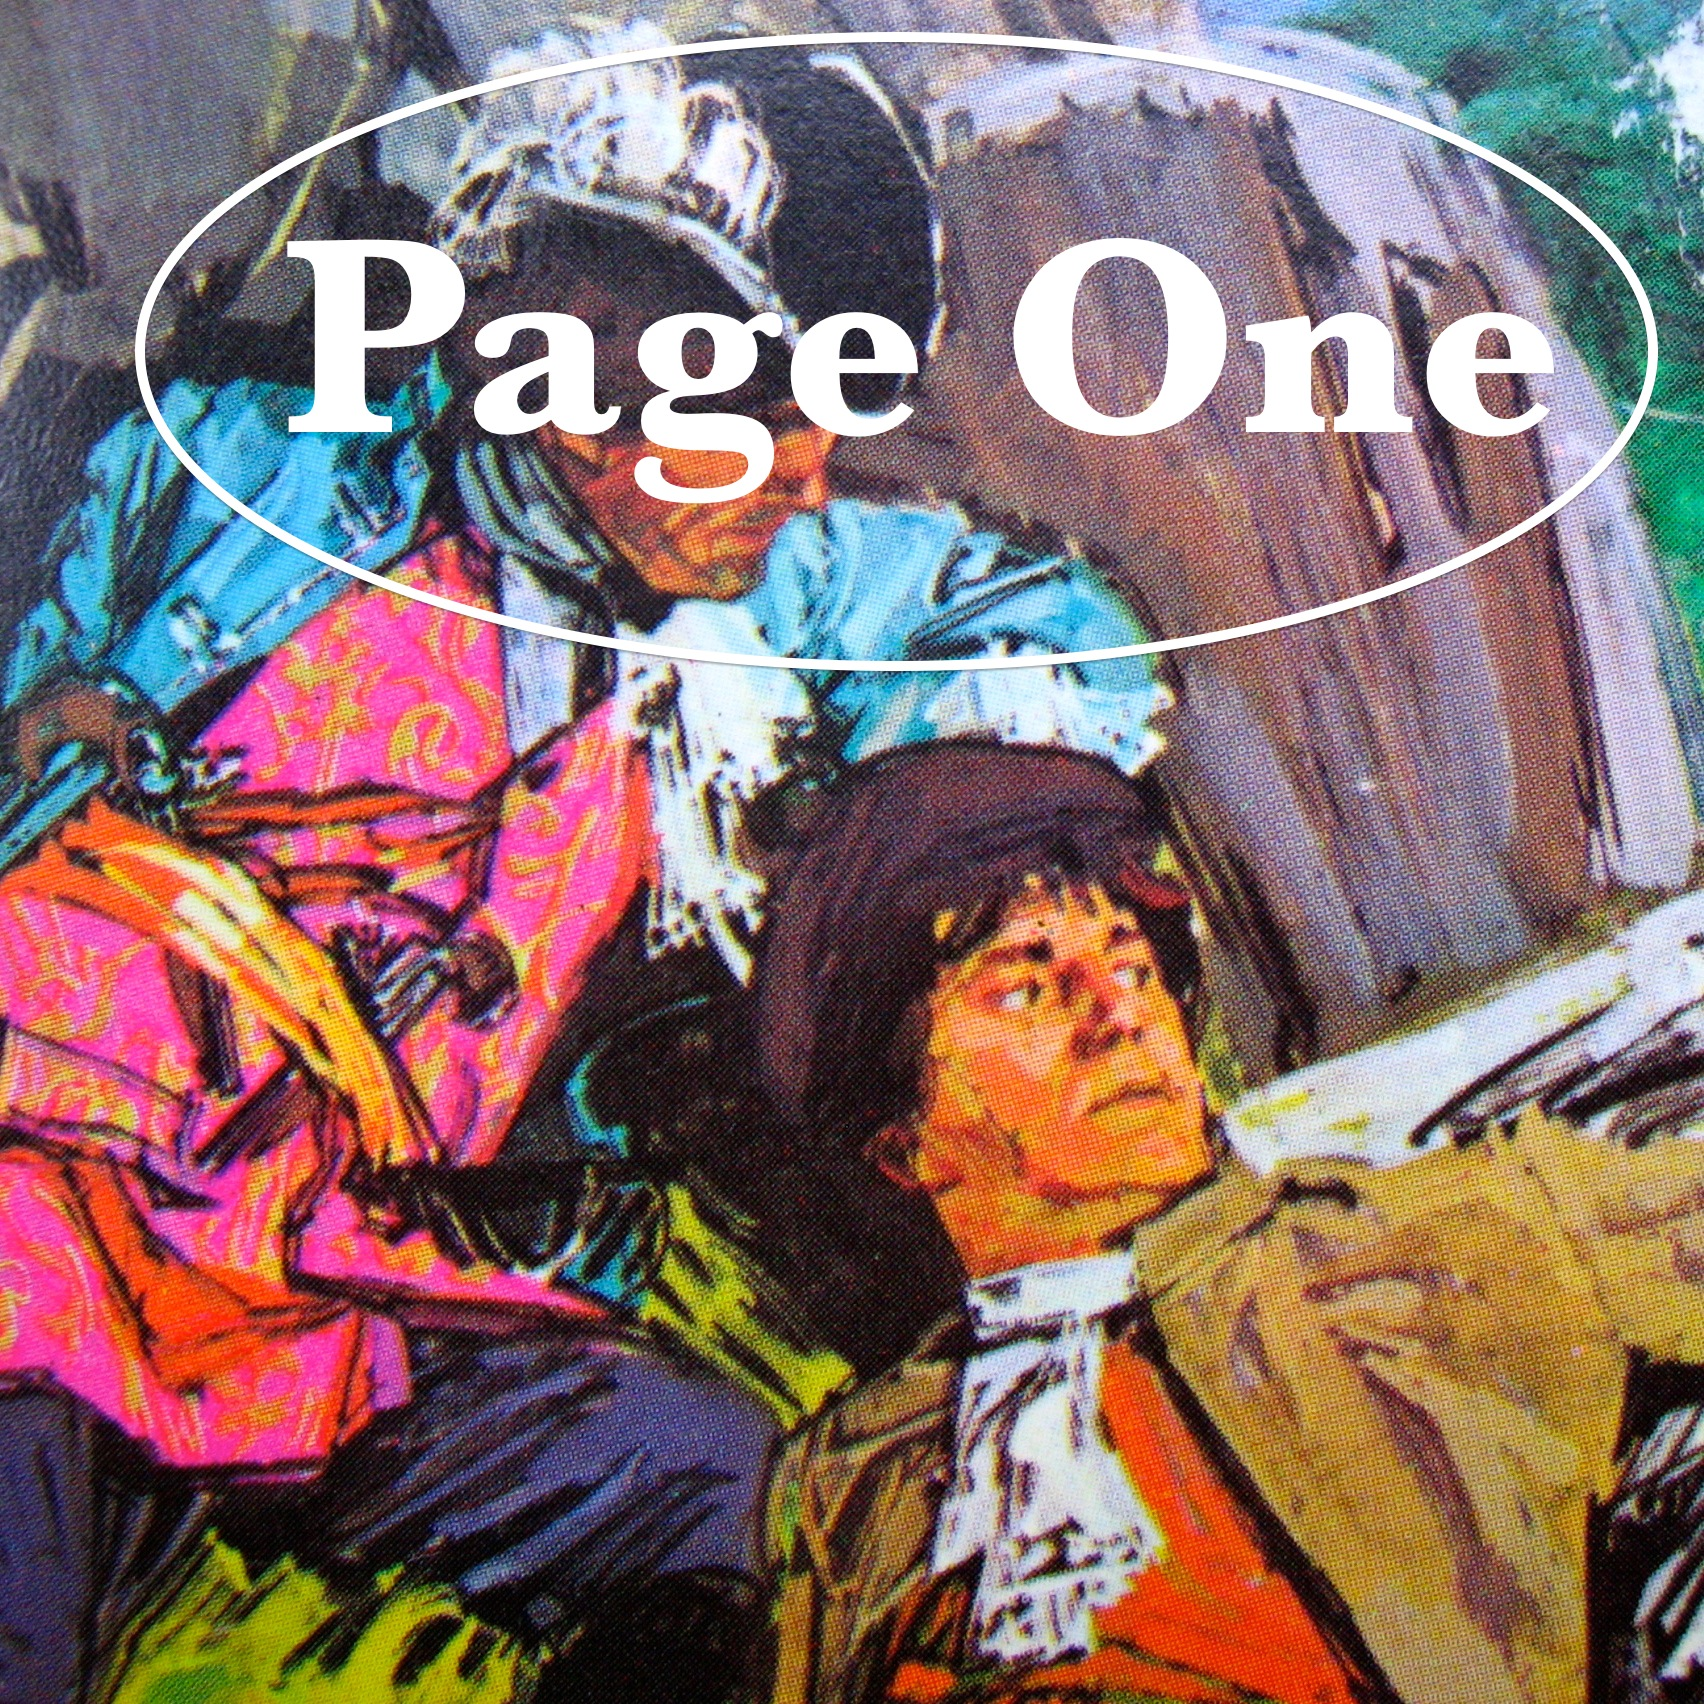 Episode image is a detail from the cover of Kidnapped by Robert Louis Stevenson, published in 1968 by Pan Books; the cover painting by John Raynes, ARCA, MSIA, shows the fugitives David Balfour and Alan Breck hiding from the redcoats in the valley of Glencoe after the murder of the 'Red Fox'.